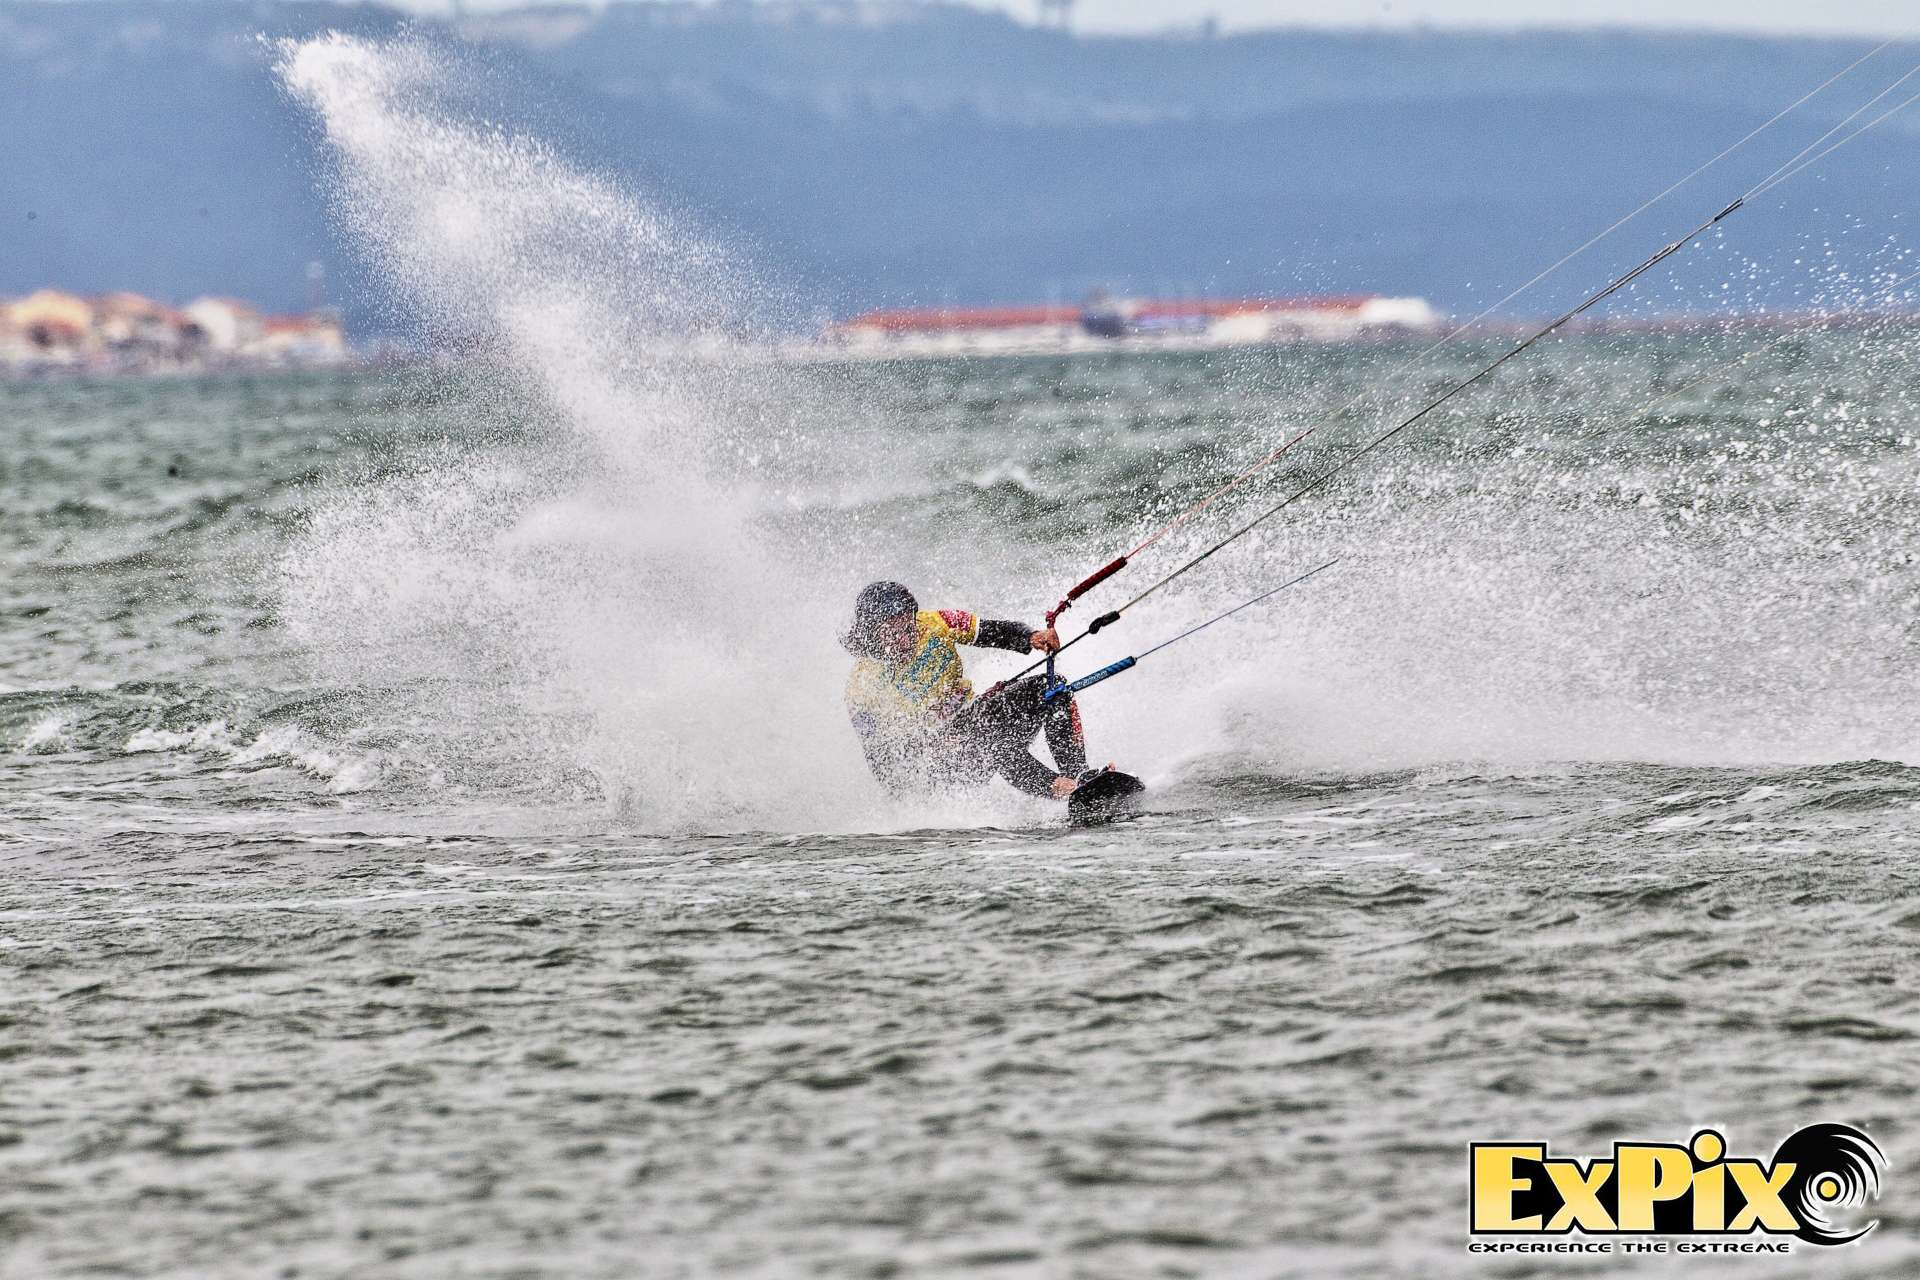 angely bouillot speed kiter hangs on